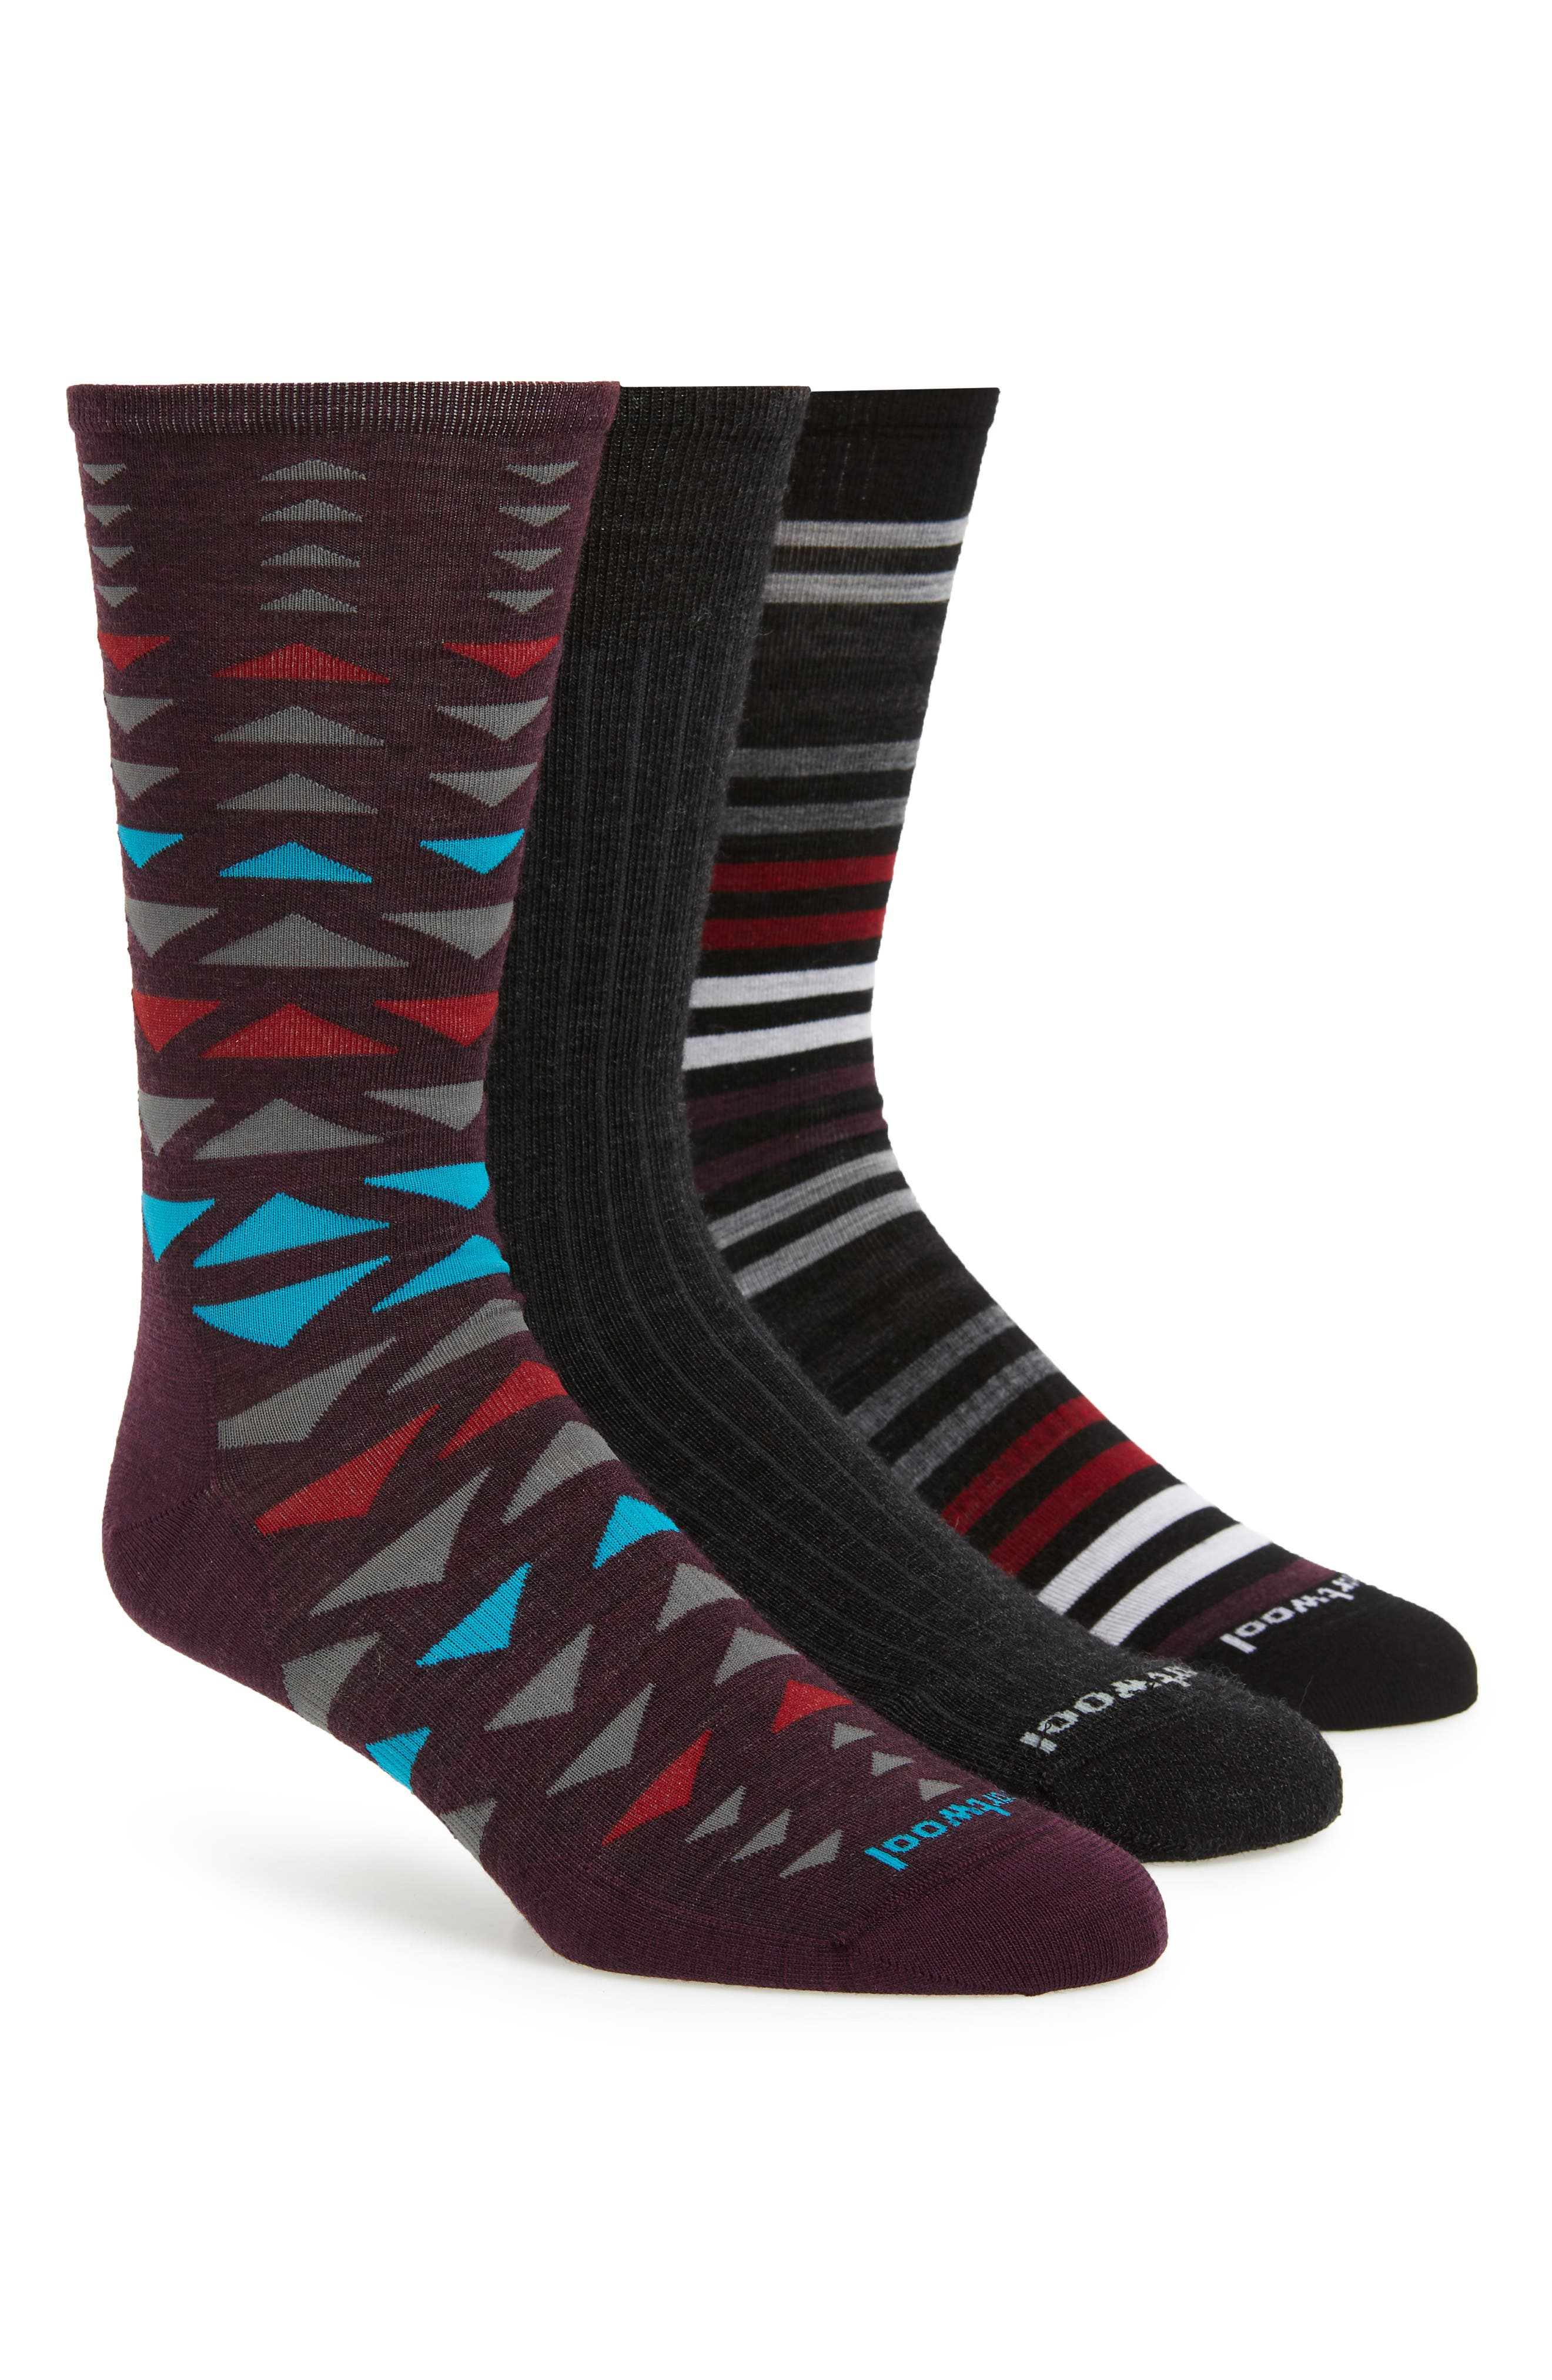 Trio 3-Pack Socks,                             Main thumbnail 1, color,                             CHARCOAL HEATHER/ TIBETAN RED